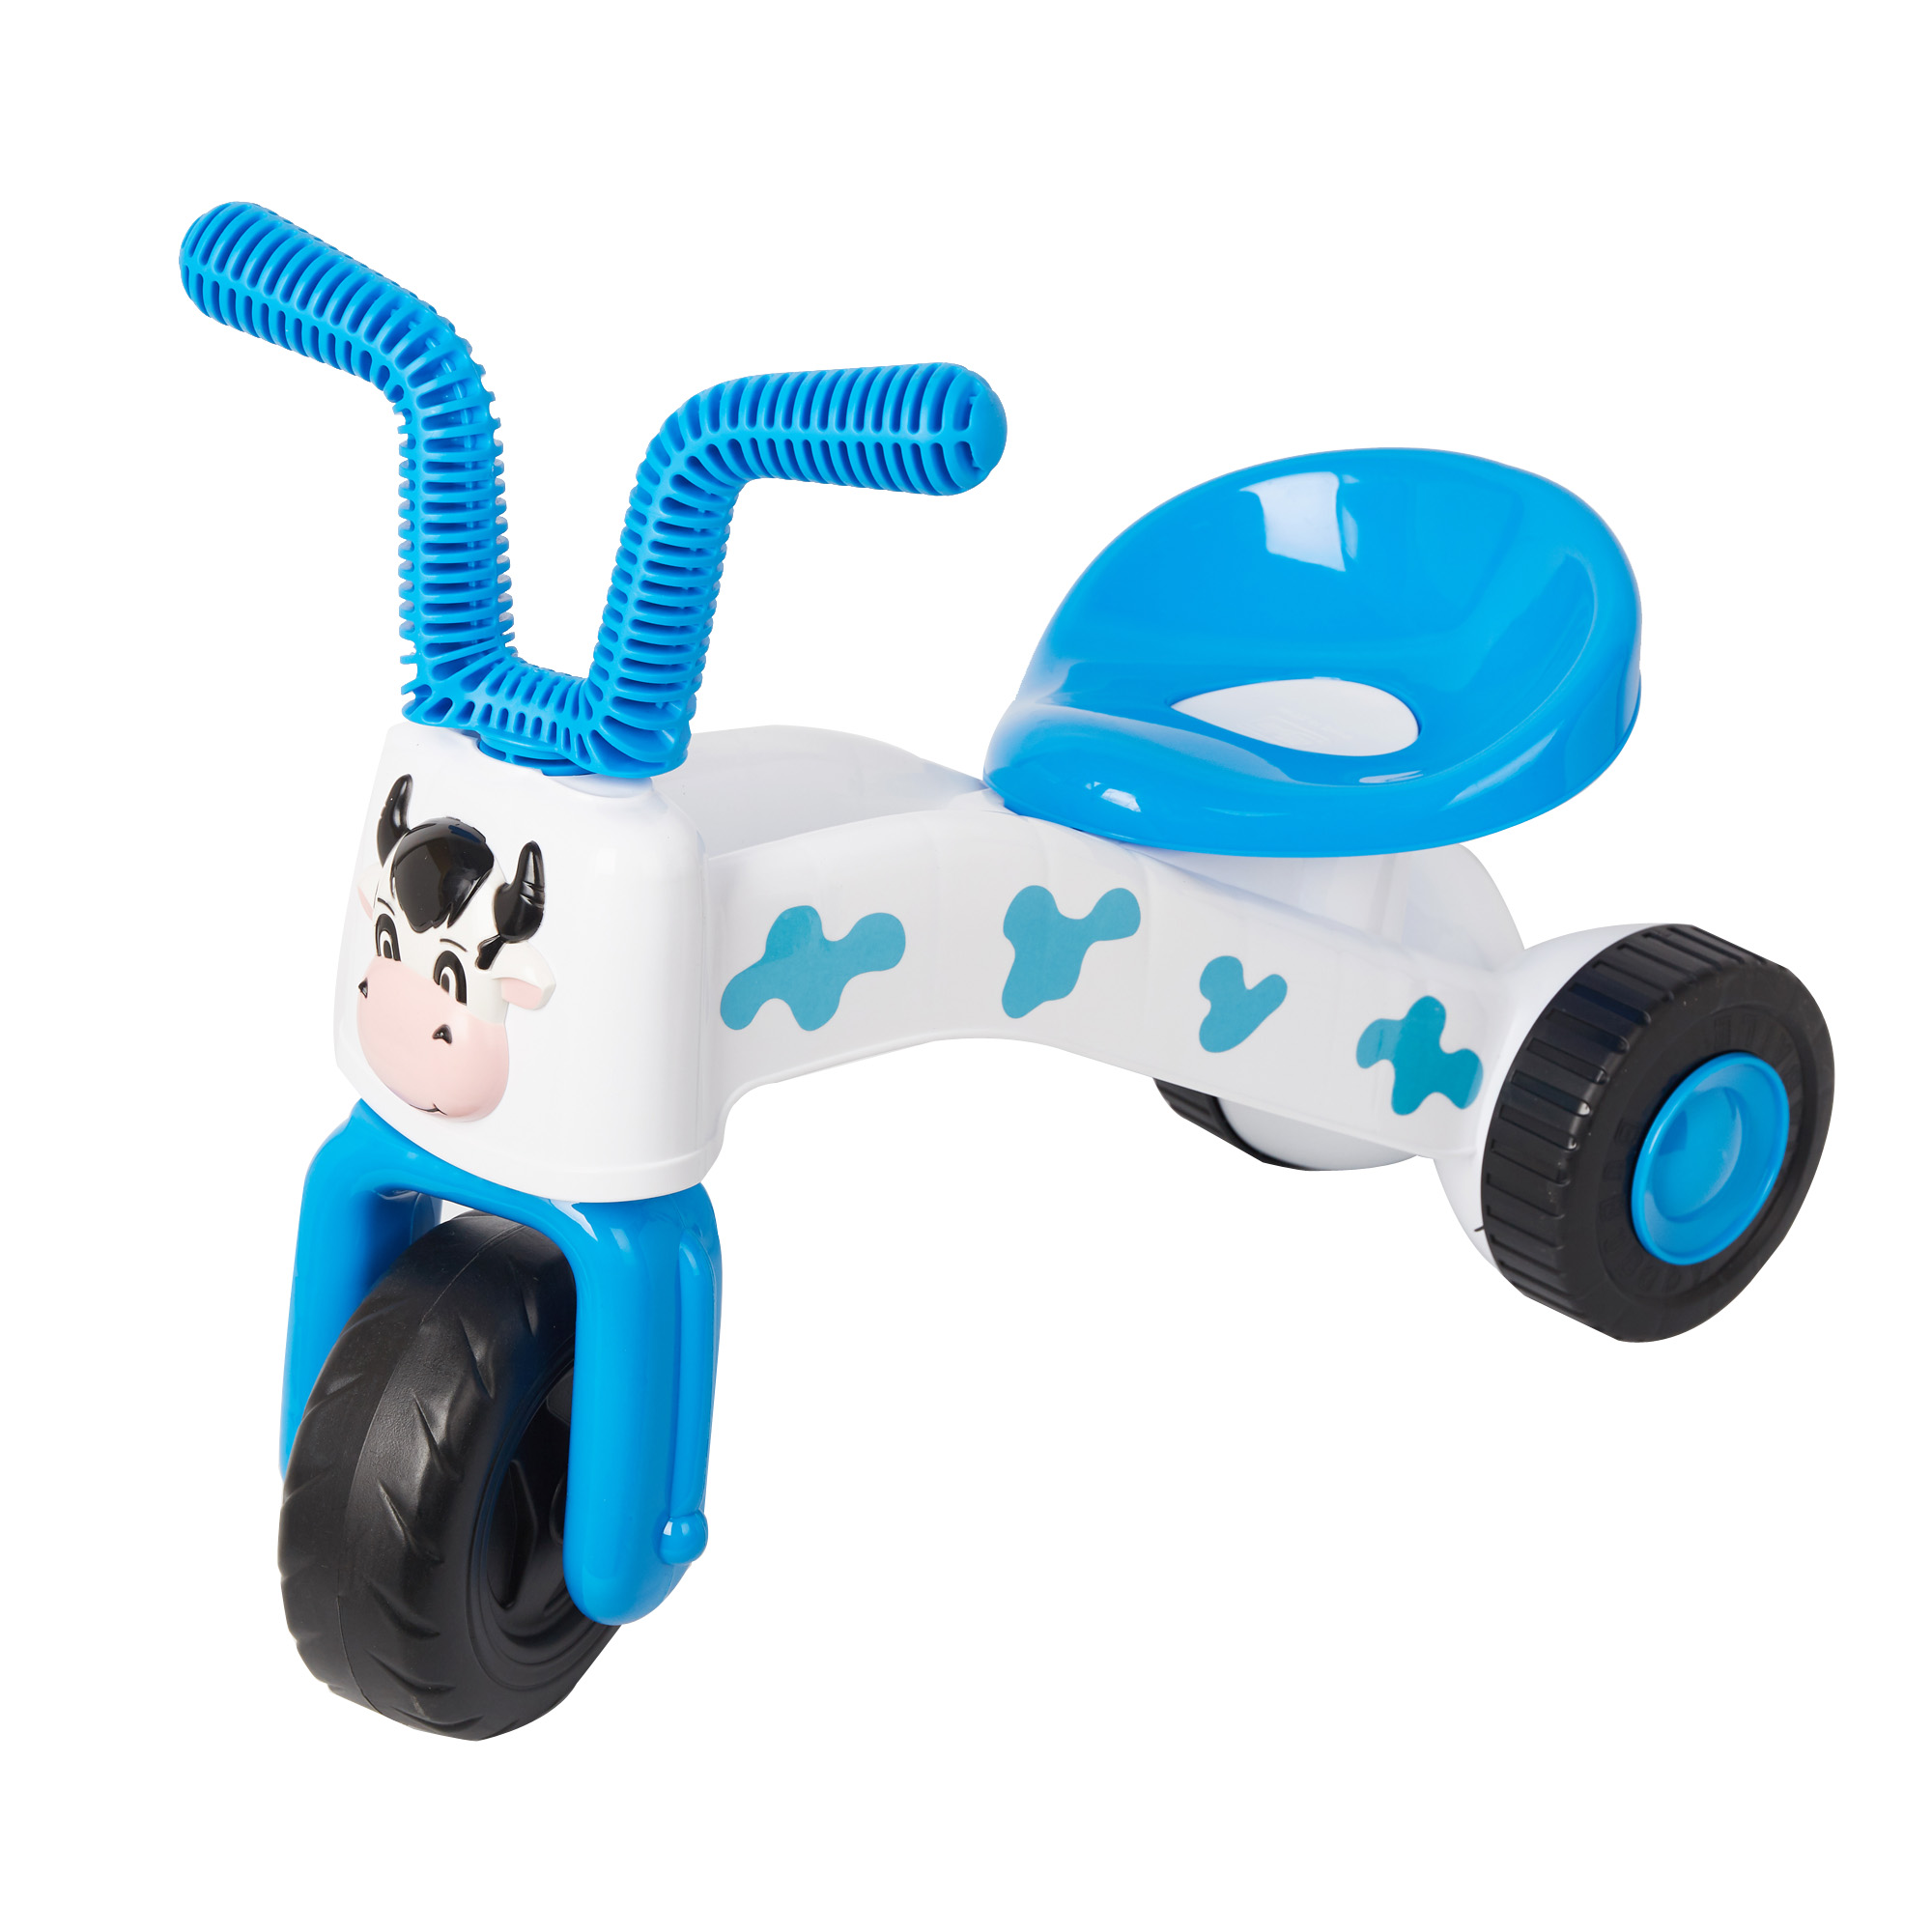 Buffalo 12 Inch Balance Bike Toddler No Pedals For 1 – 5 Year Old 2